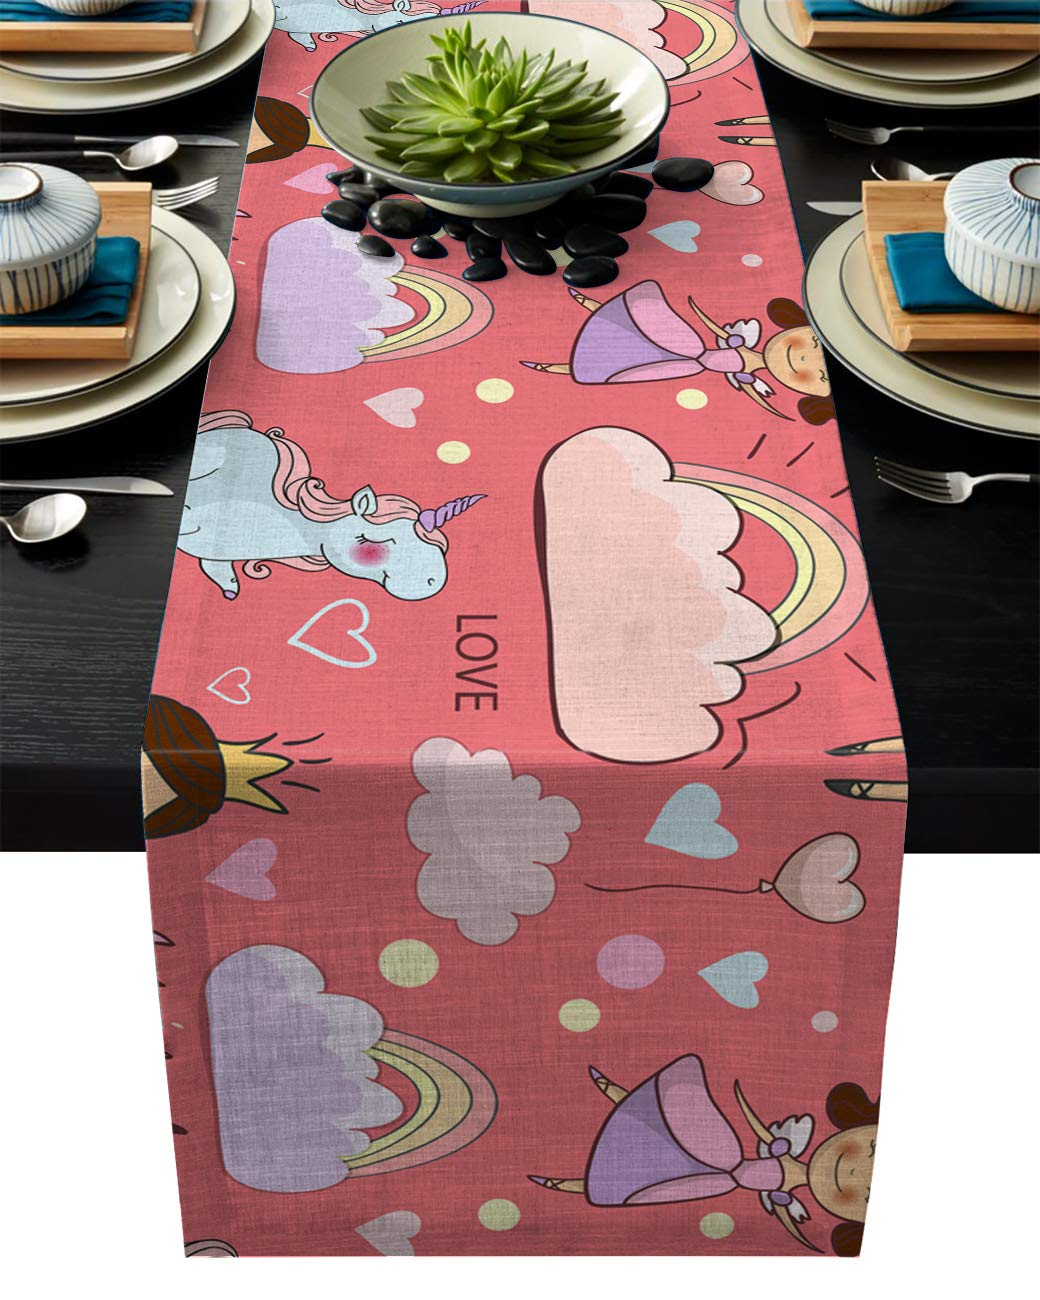 IDOWMAT Linen Burlap Table Runner Dresser Scarves 14 x 72 Inch, Pink Fairy Princess Unicorn Kitchen Table Runners for Farmhouse Dinner, Holiday Parties, Wedding, Events, Decor